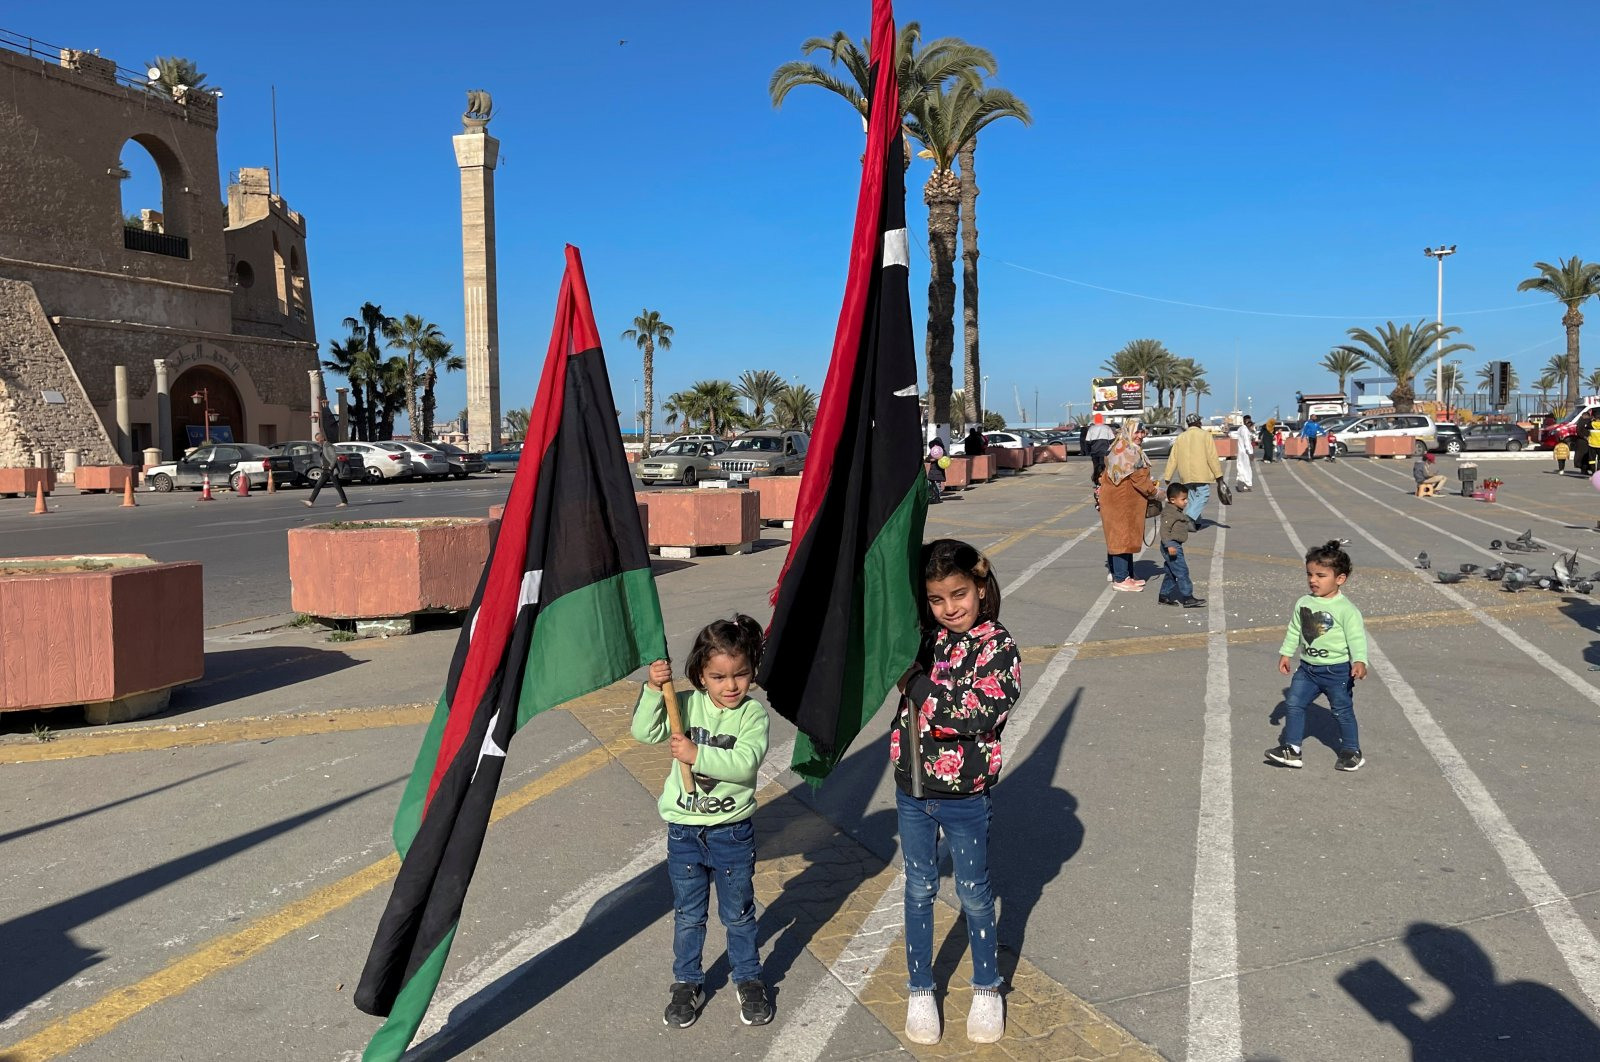 Children carrying Libyan flags pose for photos at Martyrs' Square in Tripoli, Libya, Feb. 5, 2021. (REUTERS)